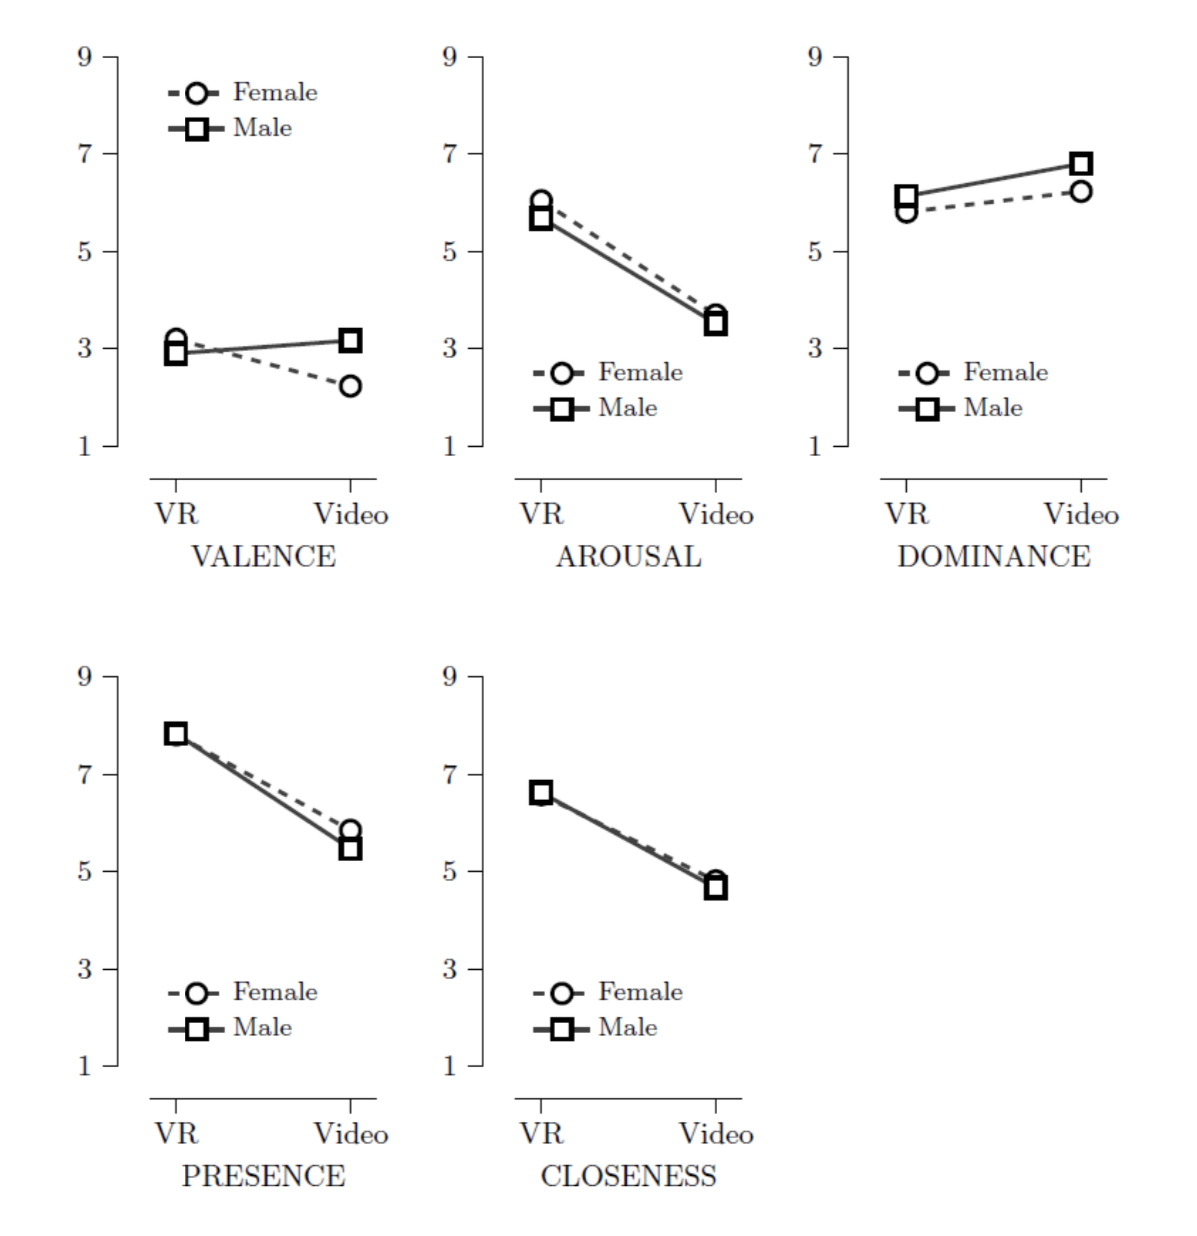 These box plots demonstrate how with the exception of Valency, the partici- pants sex did not effect any of the results